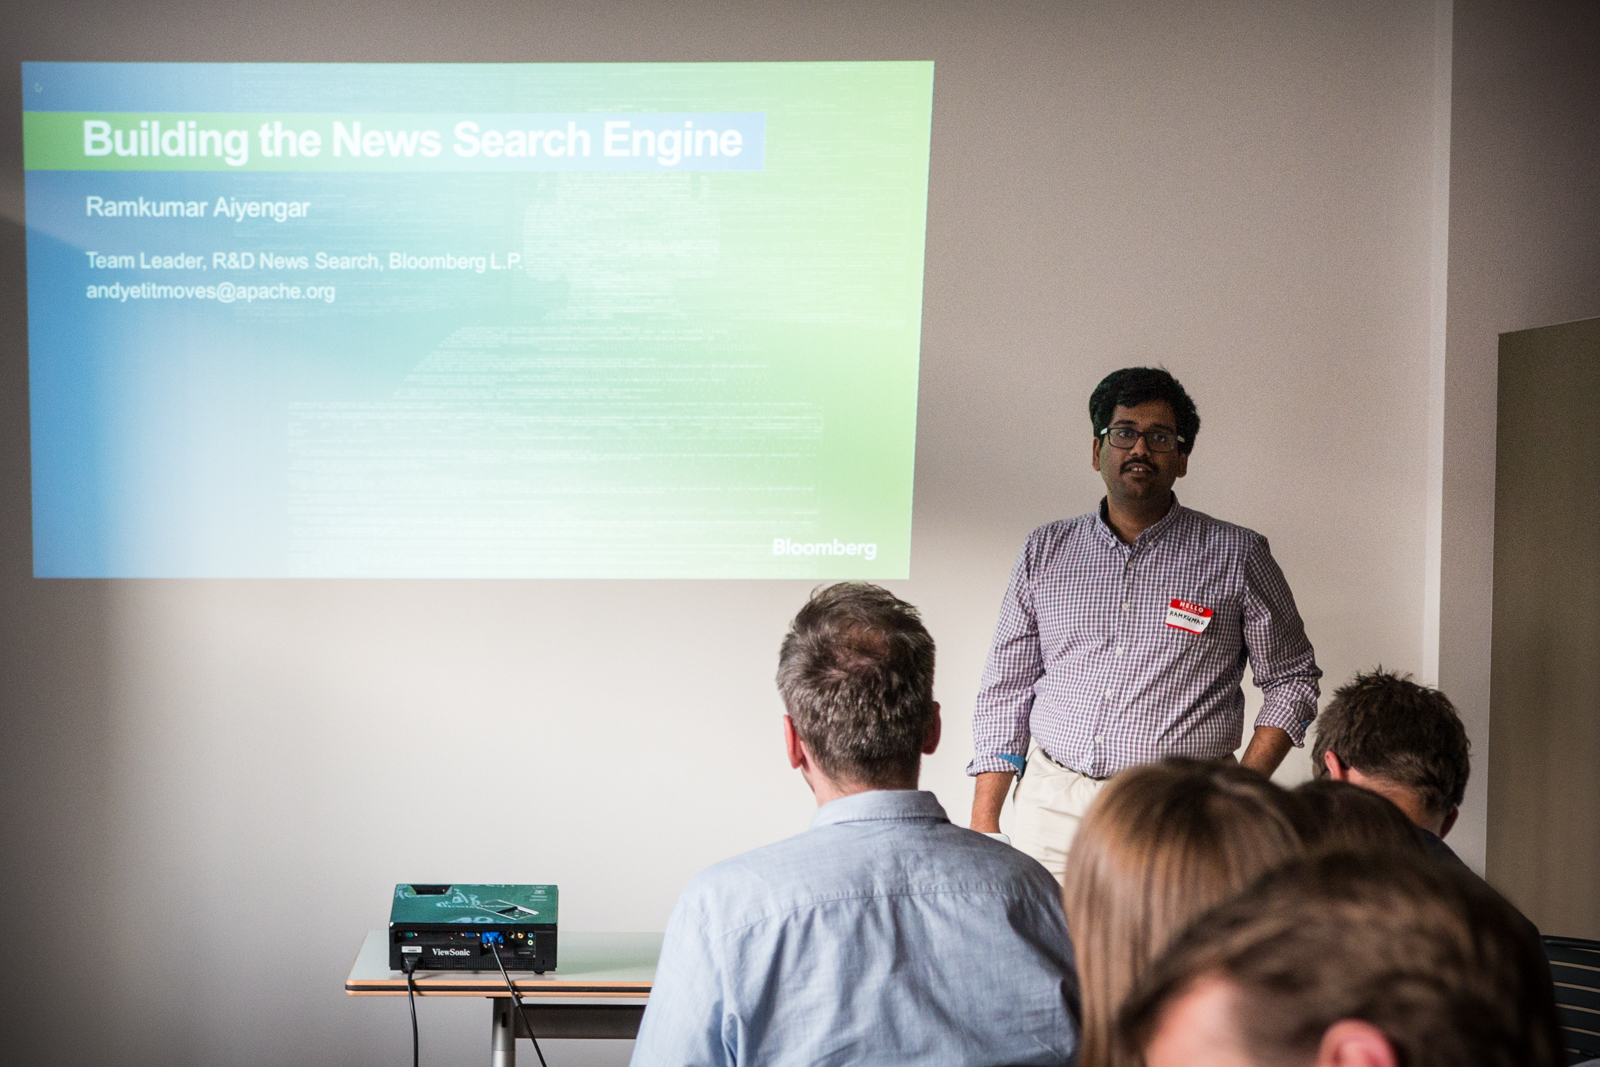 Building a real-time news search engine, Ramkumar Aiyengar